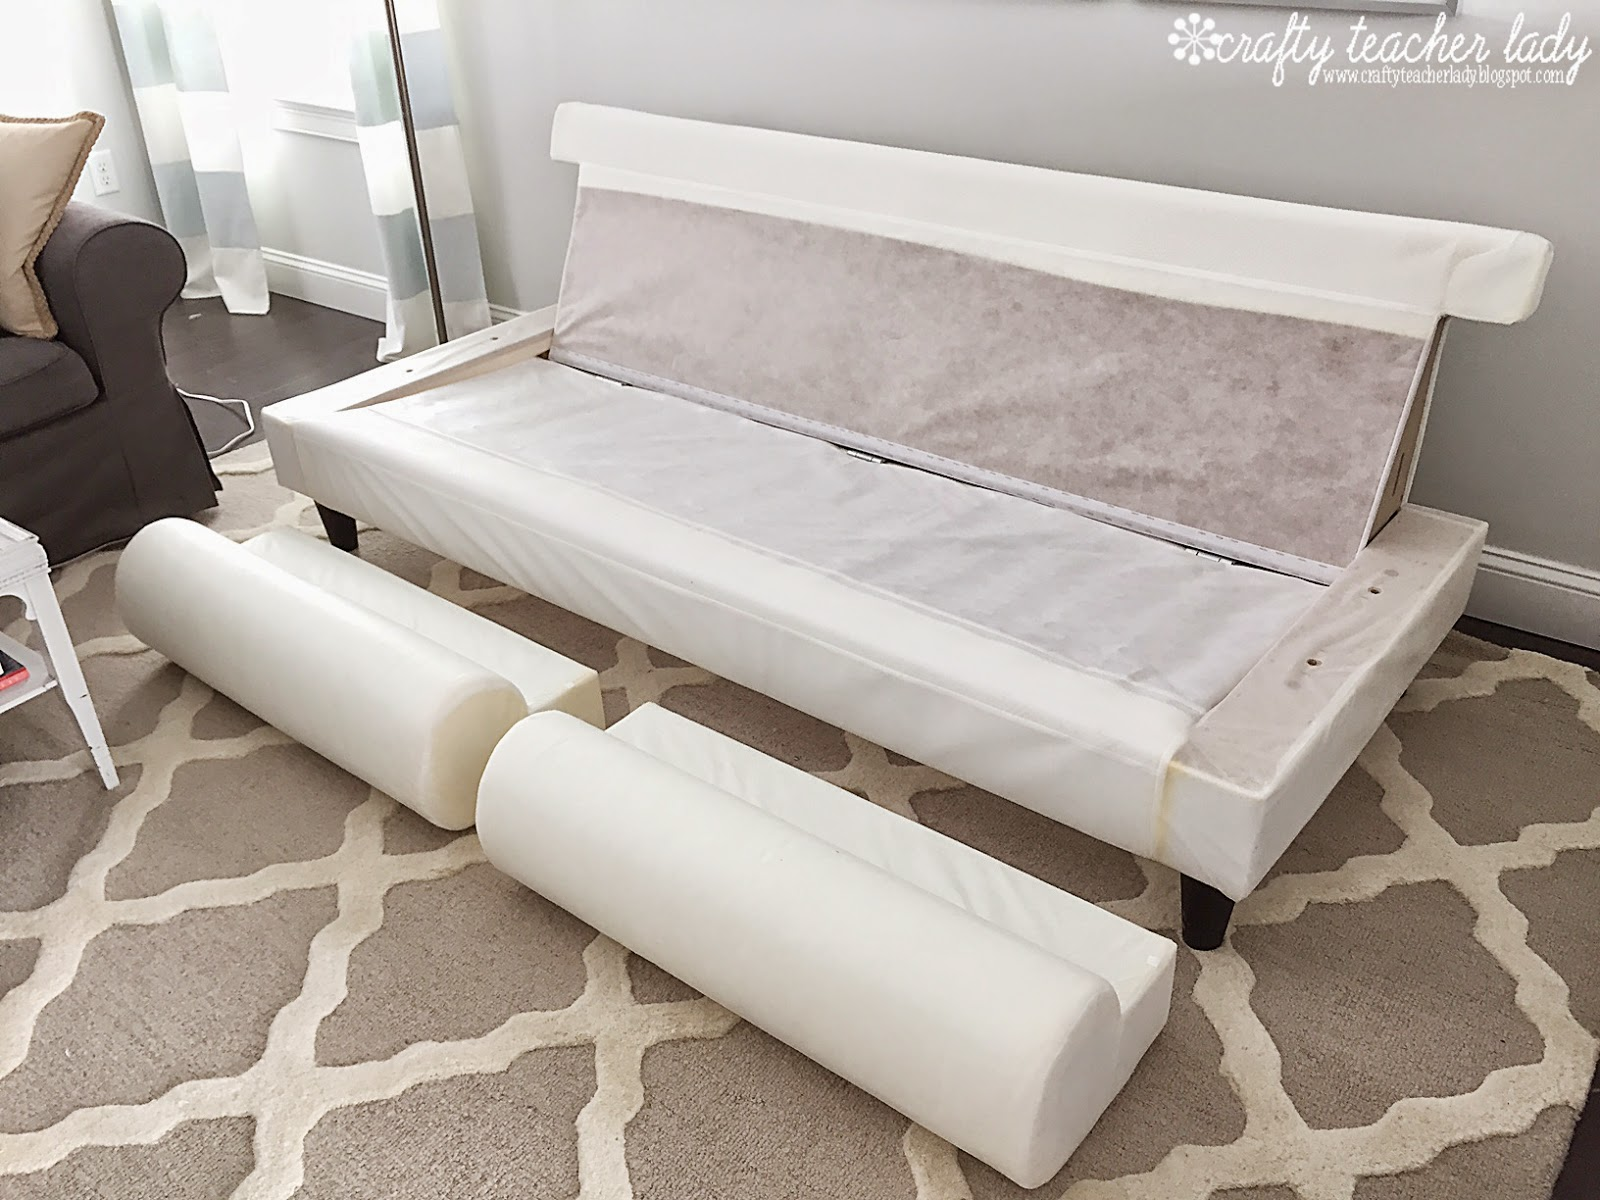 White Denim Sofa Covers Replacement Bed Frame For Sleeper Crafty Teacher Lady: Review Of The Ikea Ektorp Series